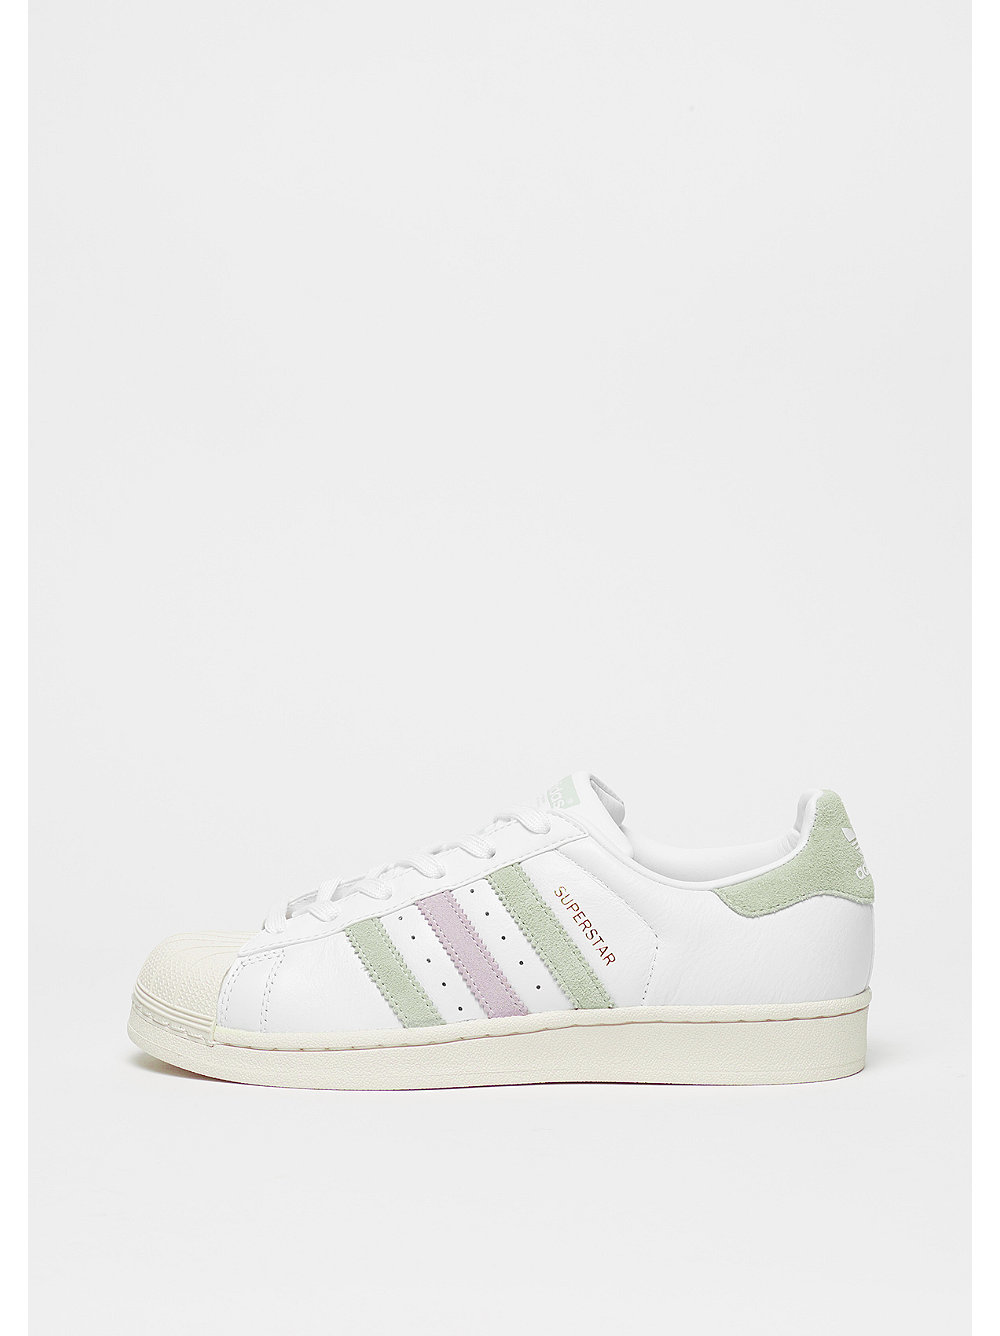 adidas Superstar white-linen green-ice purple